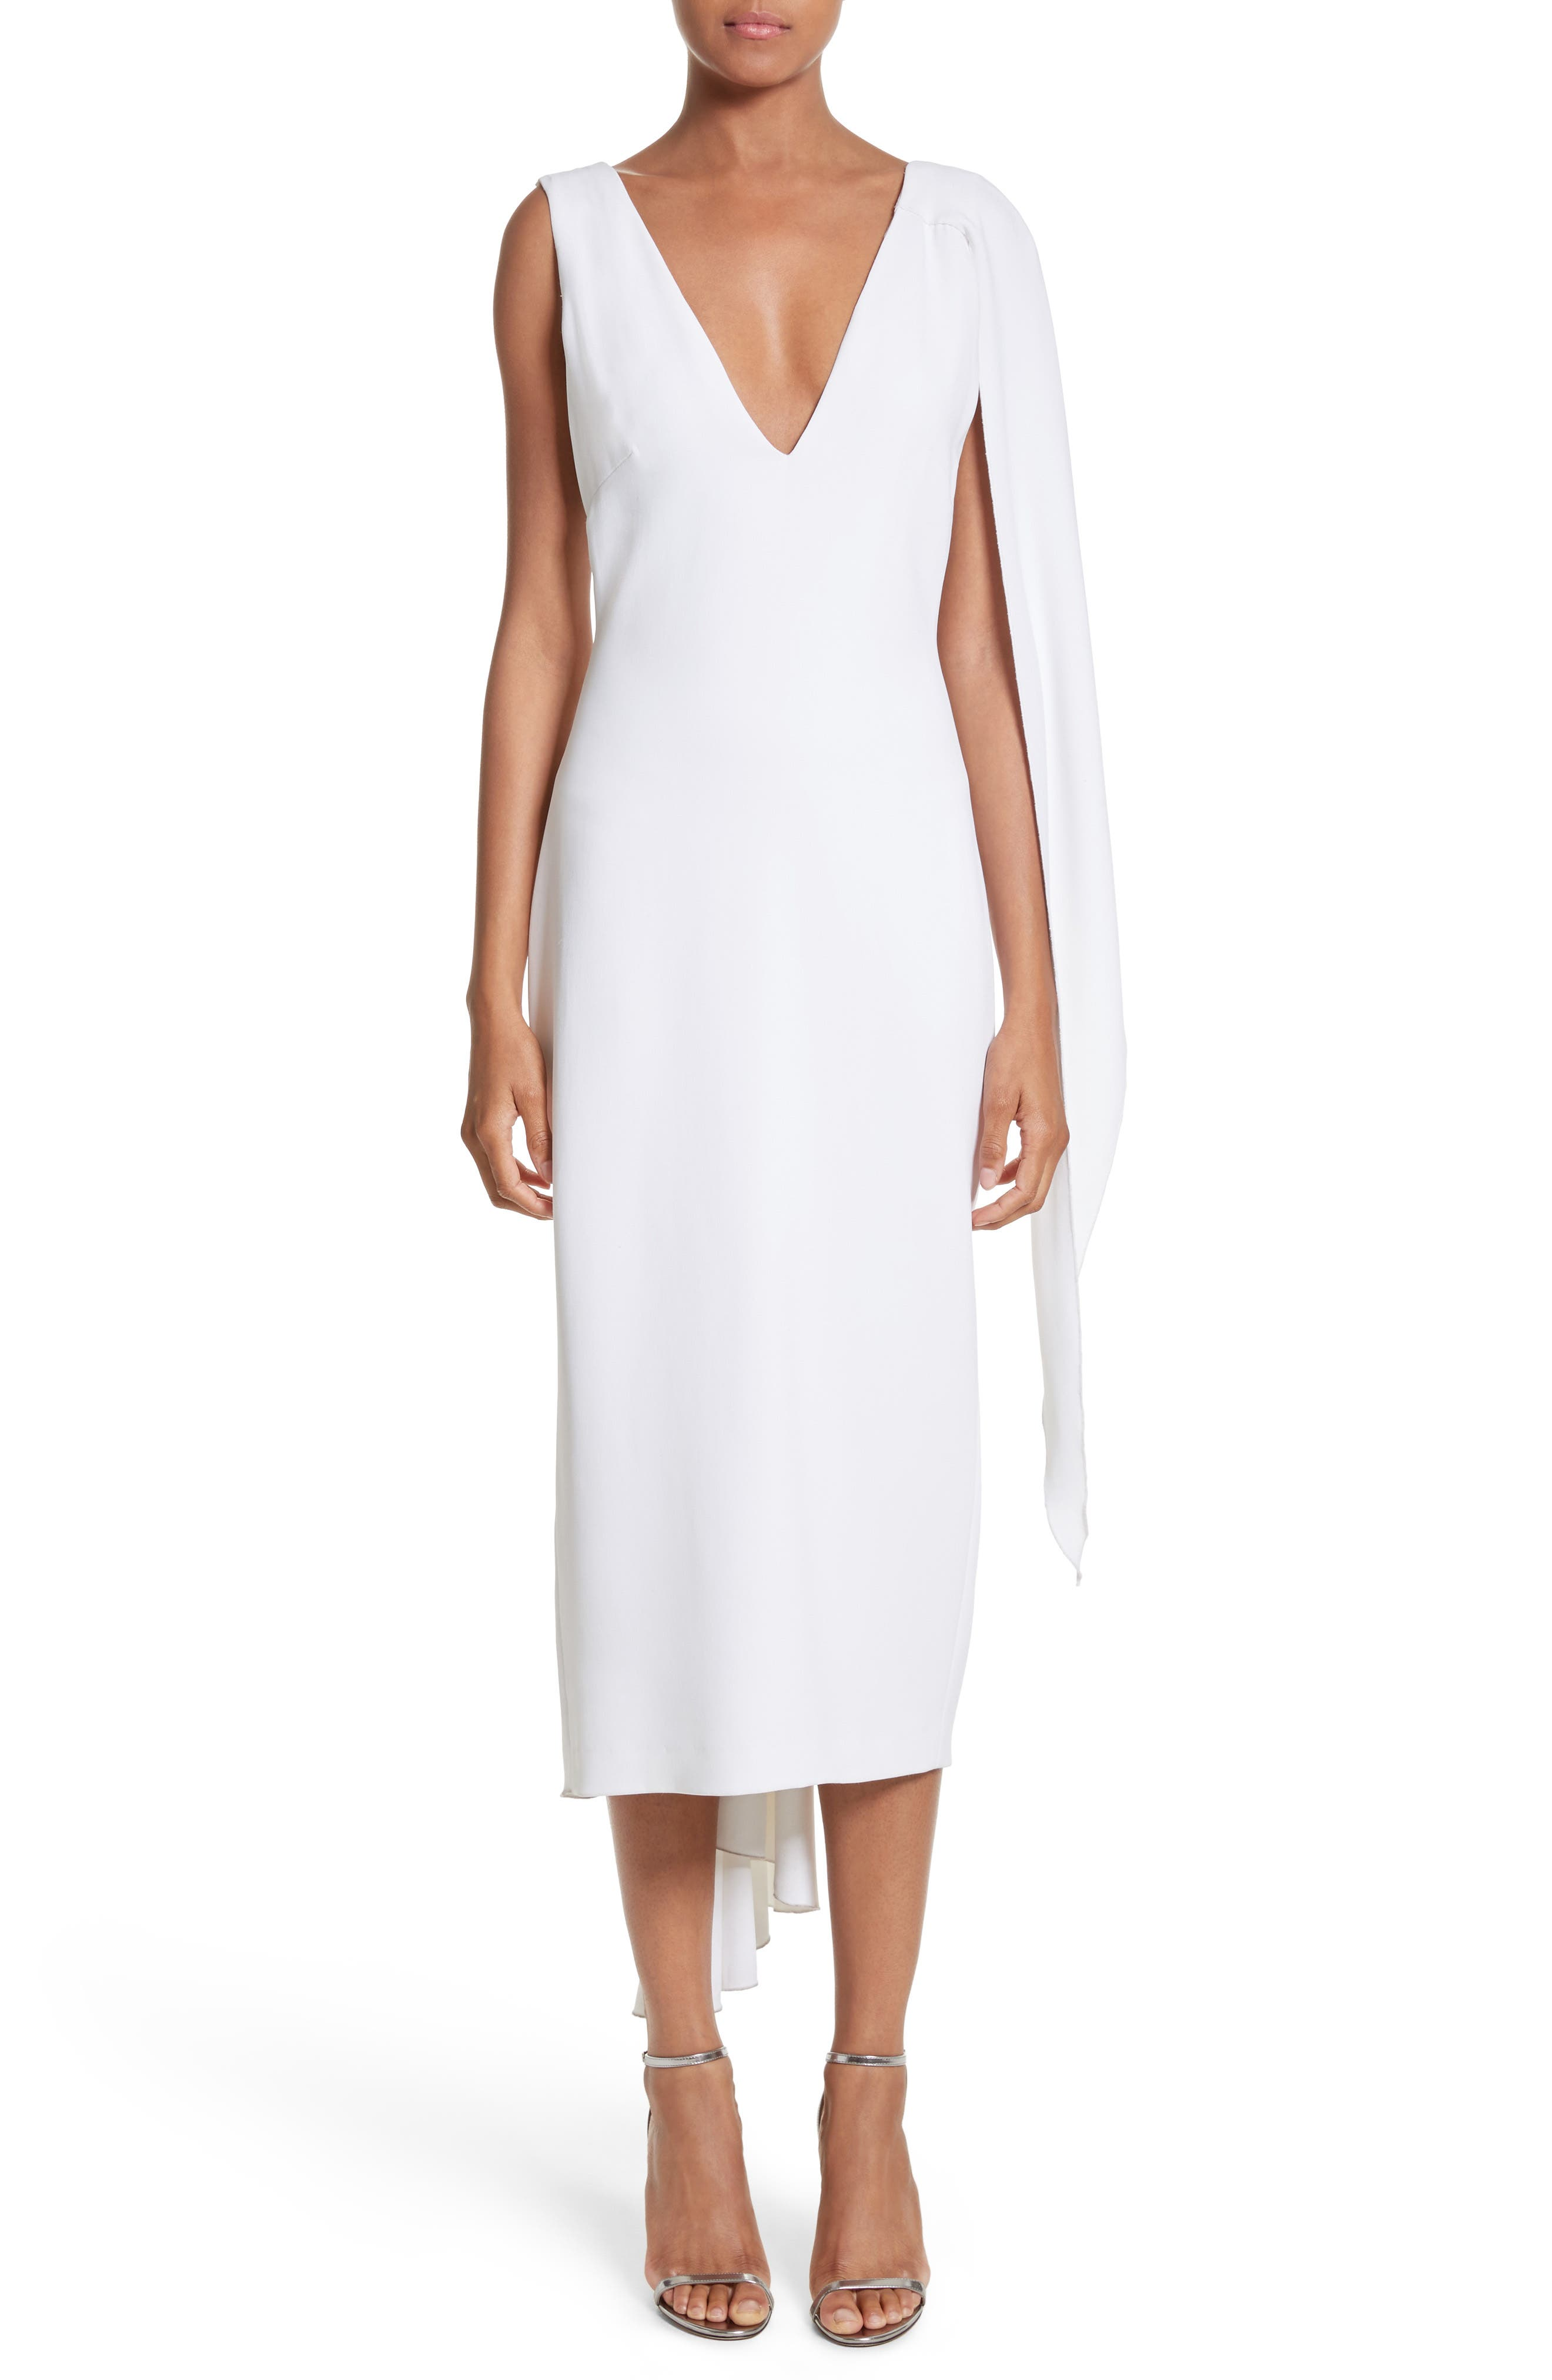 Leta Drape Dress,                             Main thumbnail 1, color,                             White